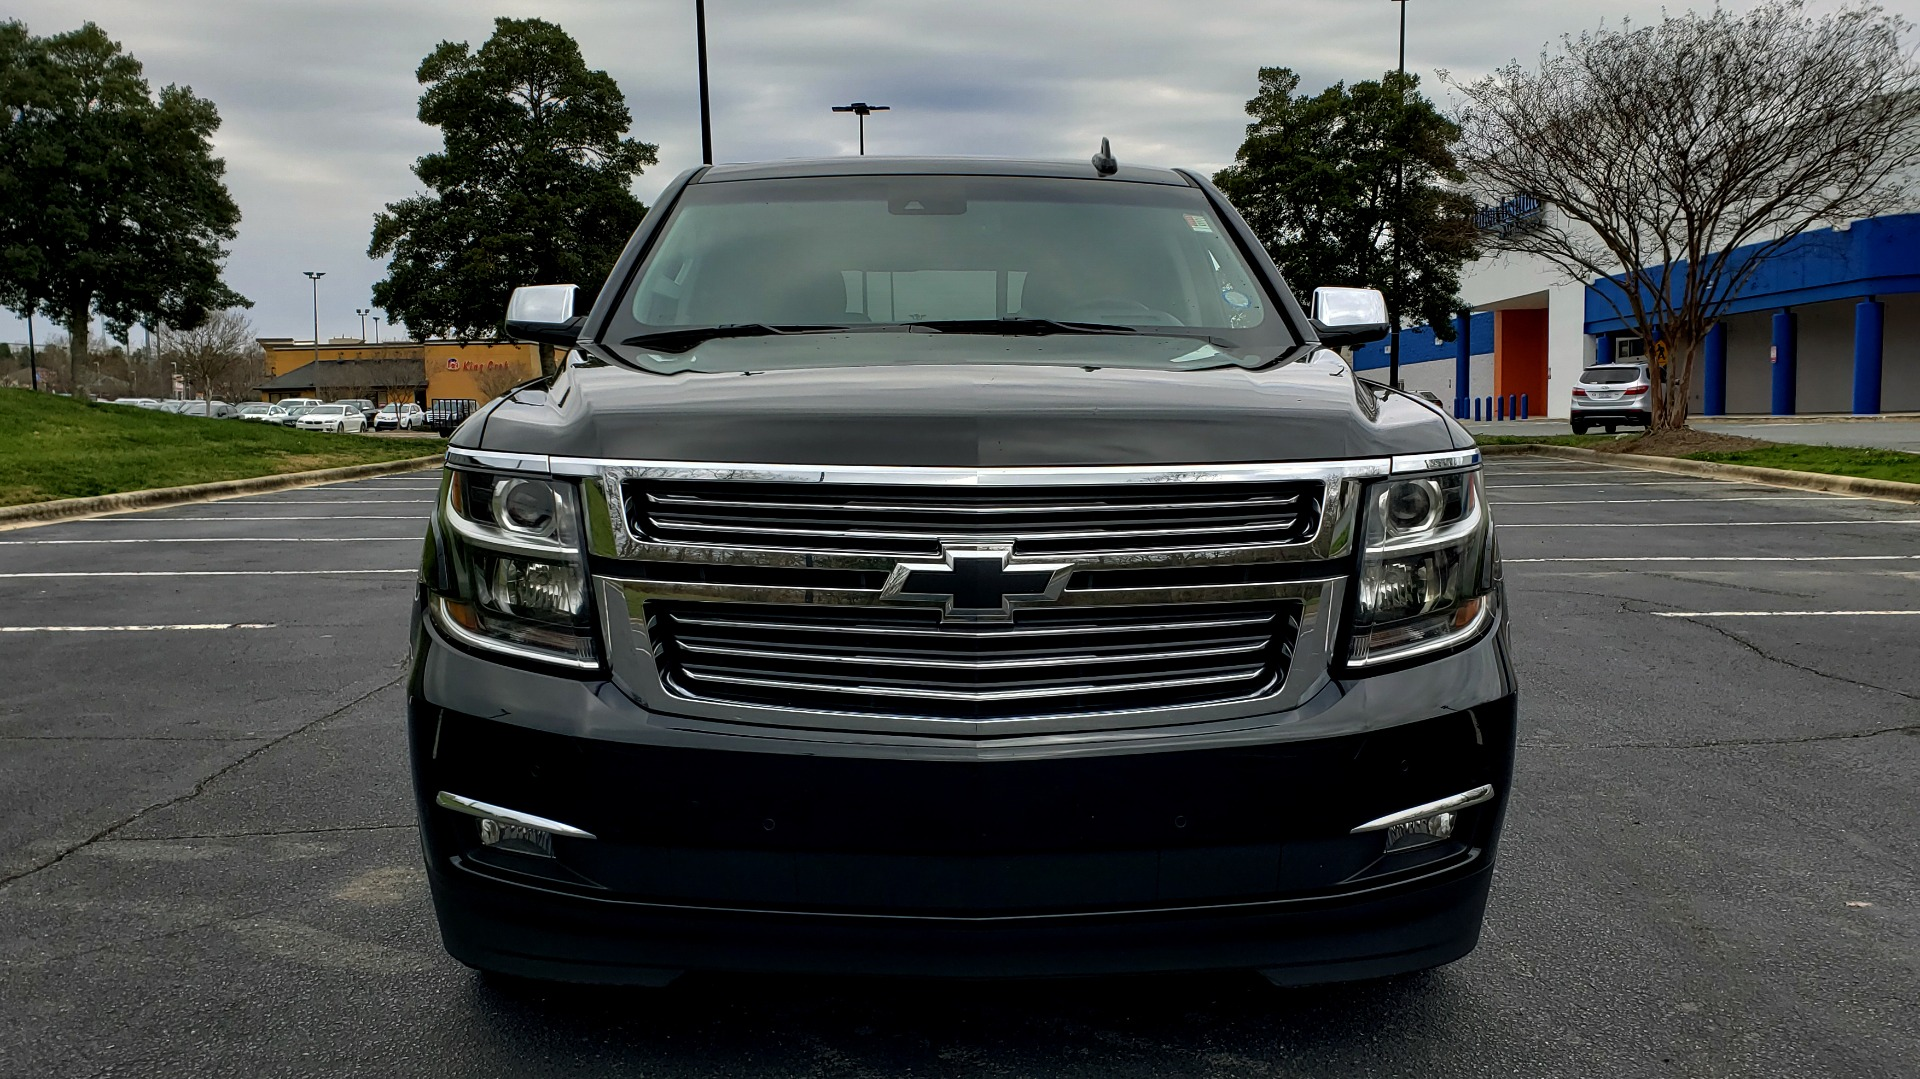 Used 2017 Chevrolet TAHOE PREMIER 4WD / NAV / SNRF / ENTERT / REARVIEW / 3-ROW for sale Sold at Formula Imports in Charlotte NC 28227 21